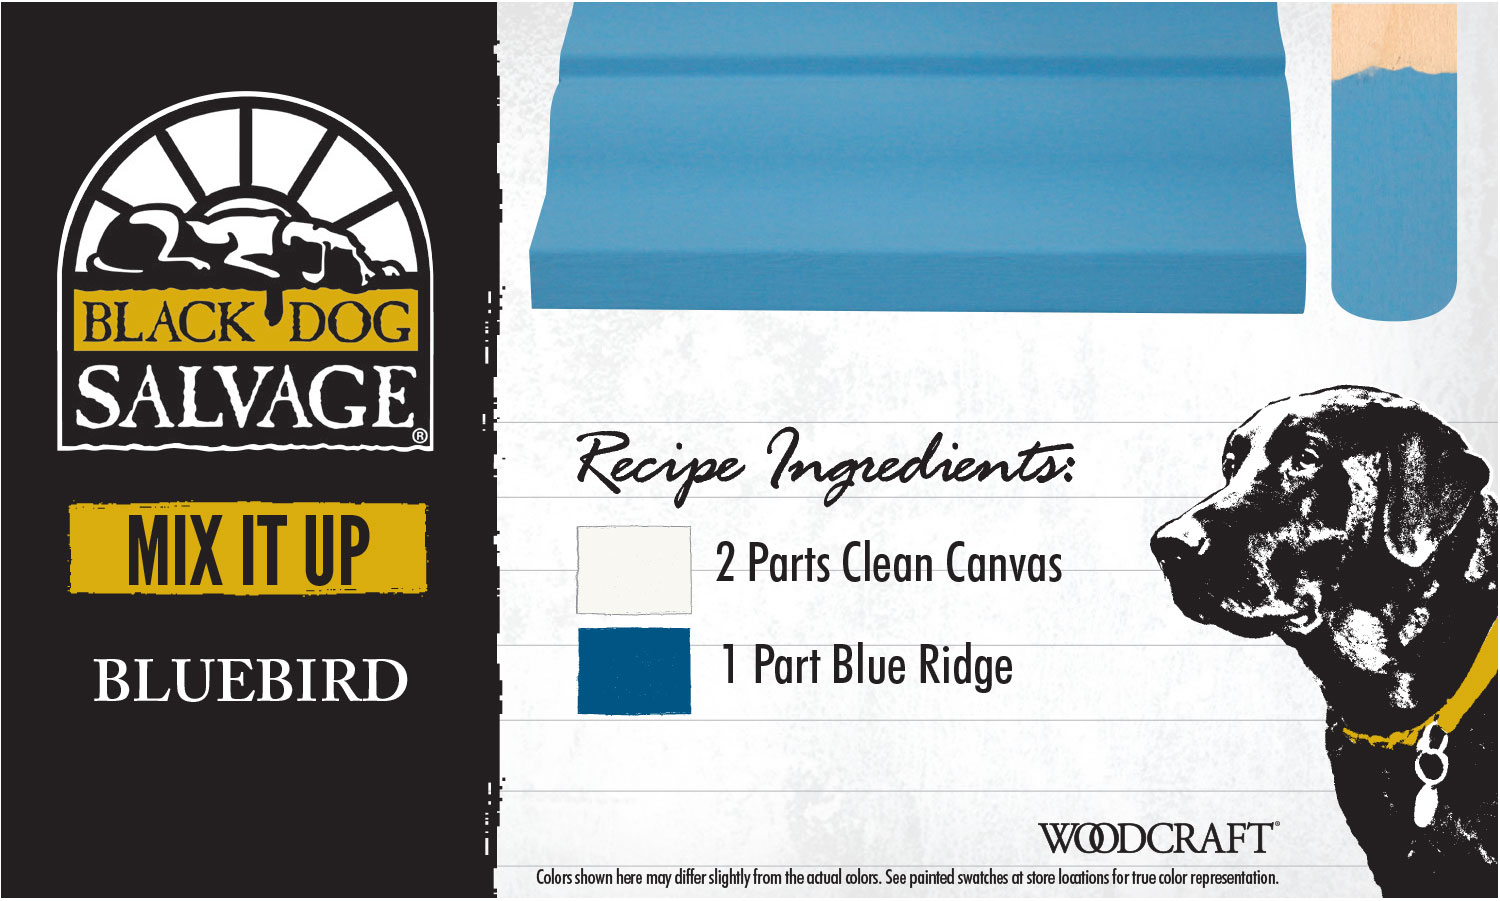 """""""Blue Bird"""" is made from 2 Parts """"Clean Canvas"""" and 1 Part """"Blue Ridge"""""""